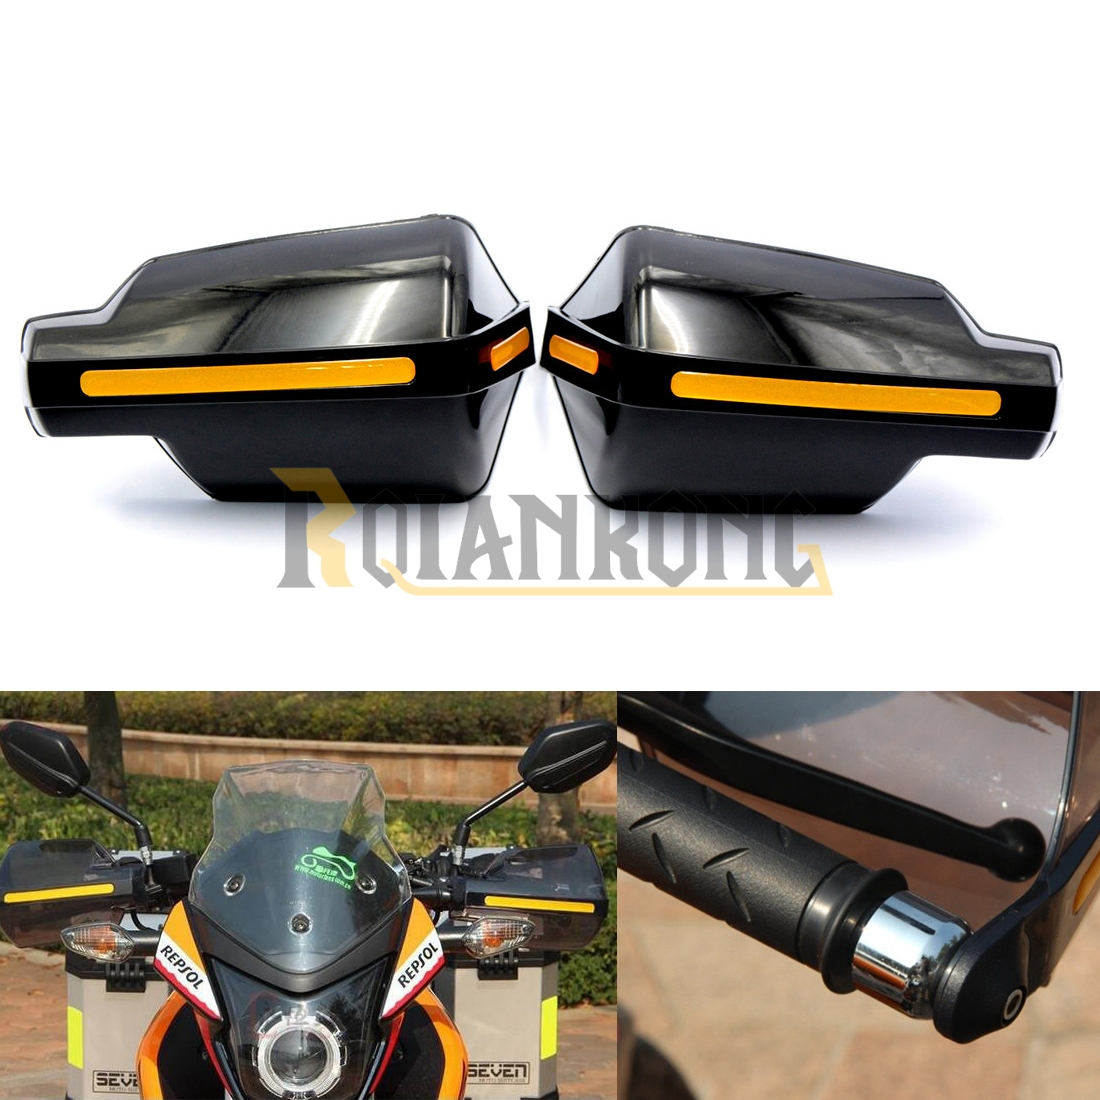 Motorcycle wind shield Brake lever hand guard For Honda CBR600 CBR 600 F2 F3 F4 F4i CBR1000RR/SP with Hollow Handle bar arashi motorcycle radiator grille protective cover grill guard protector for 2008 2009 2010 2011 honda cbr1000rr cbr 1000 rr